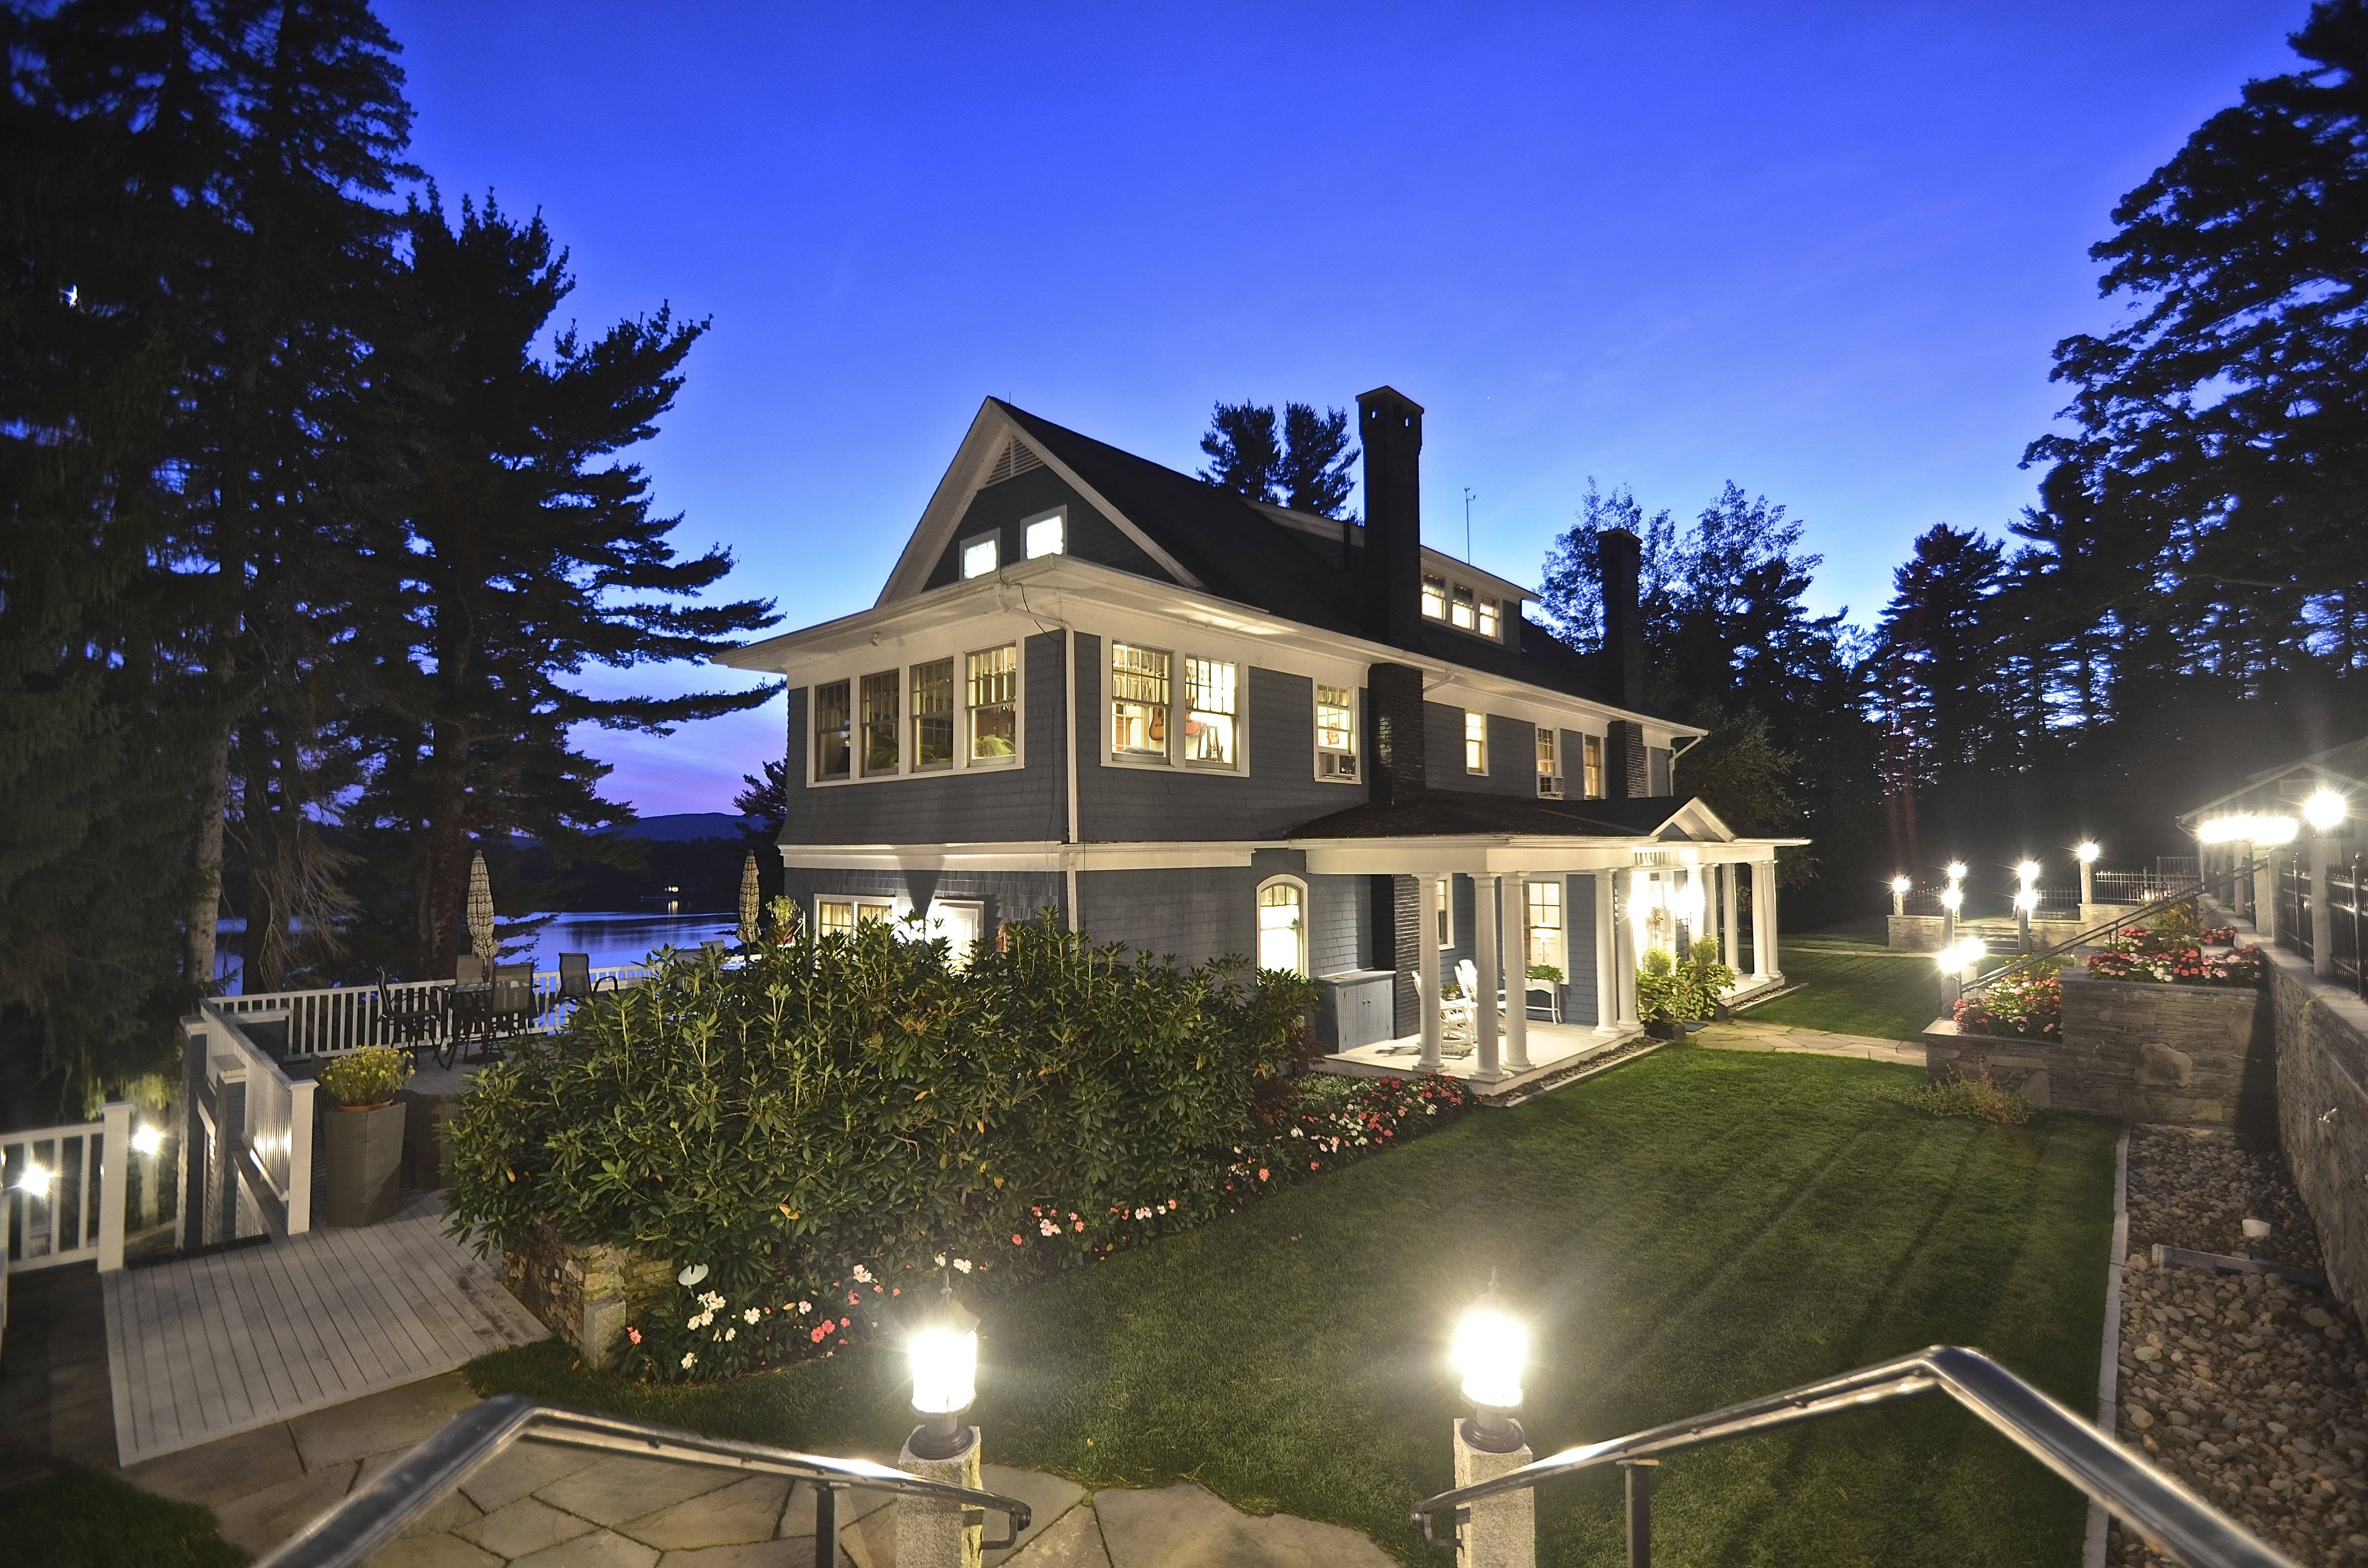 3 lavish lake houses for sale for Building a lake house